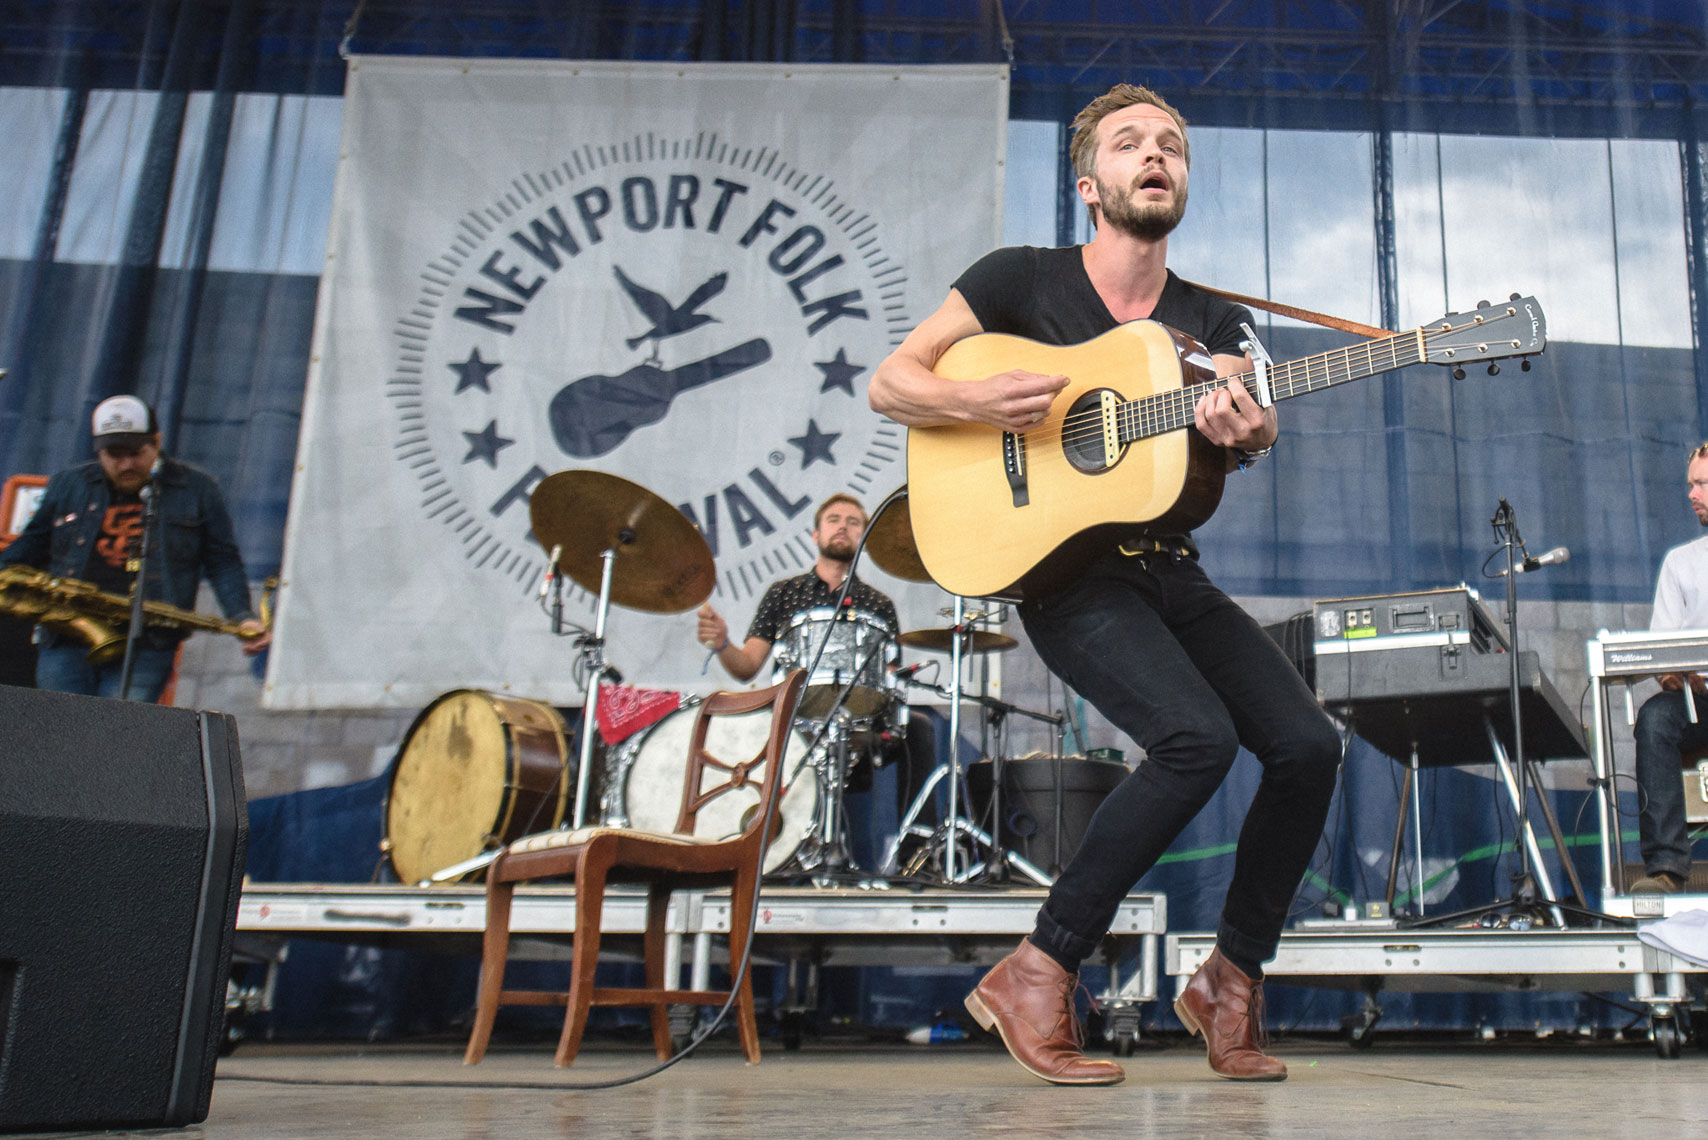 The-Tallest-Man-On-Earth-at-Newport-Folk